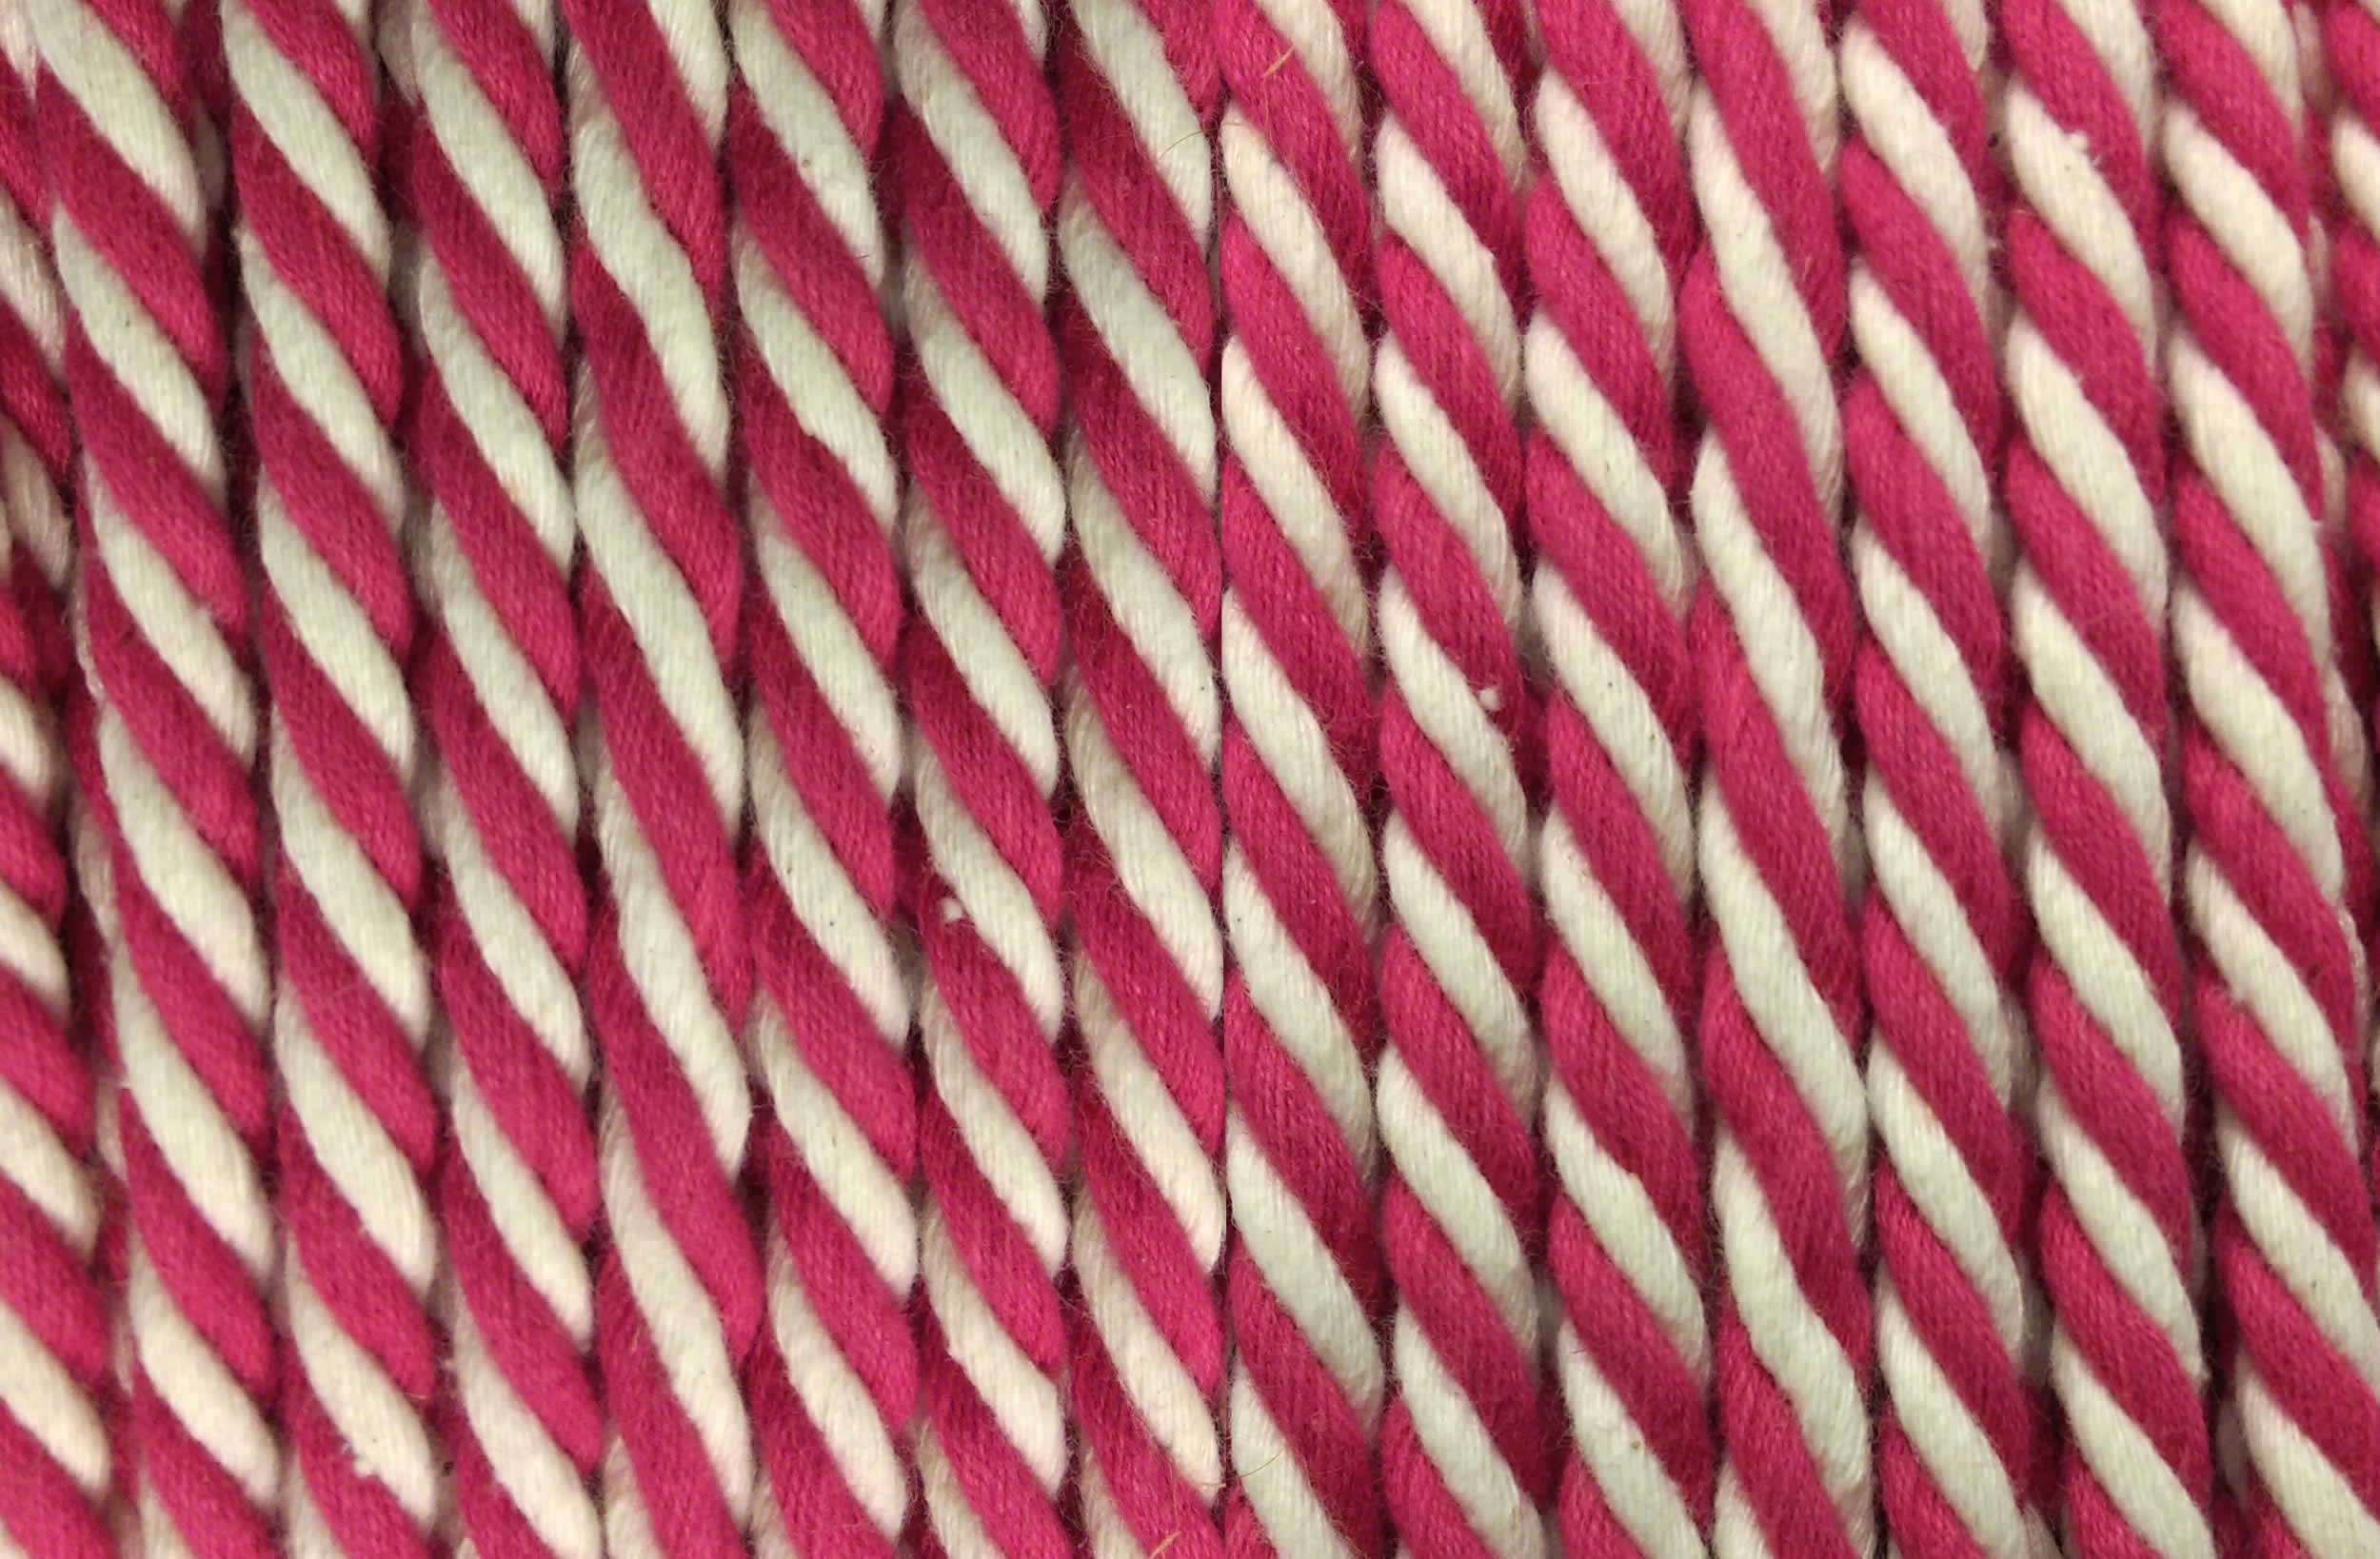 Pink Striped Cord | Pink and White Striped Rope